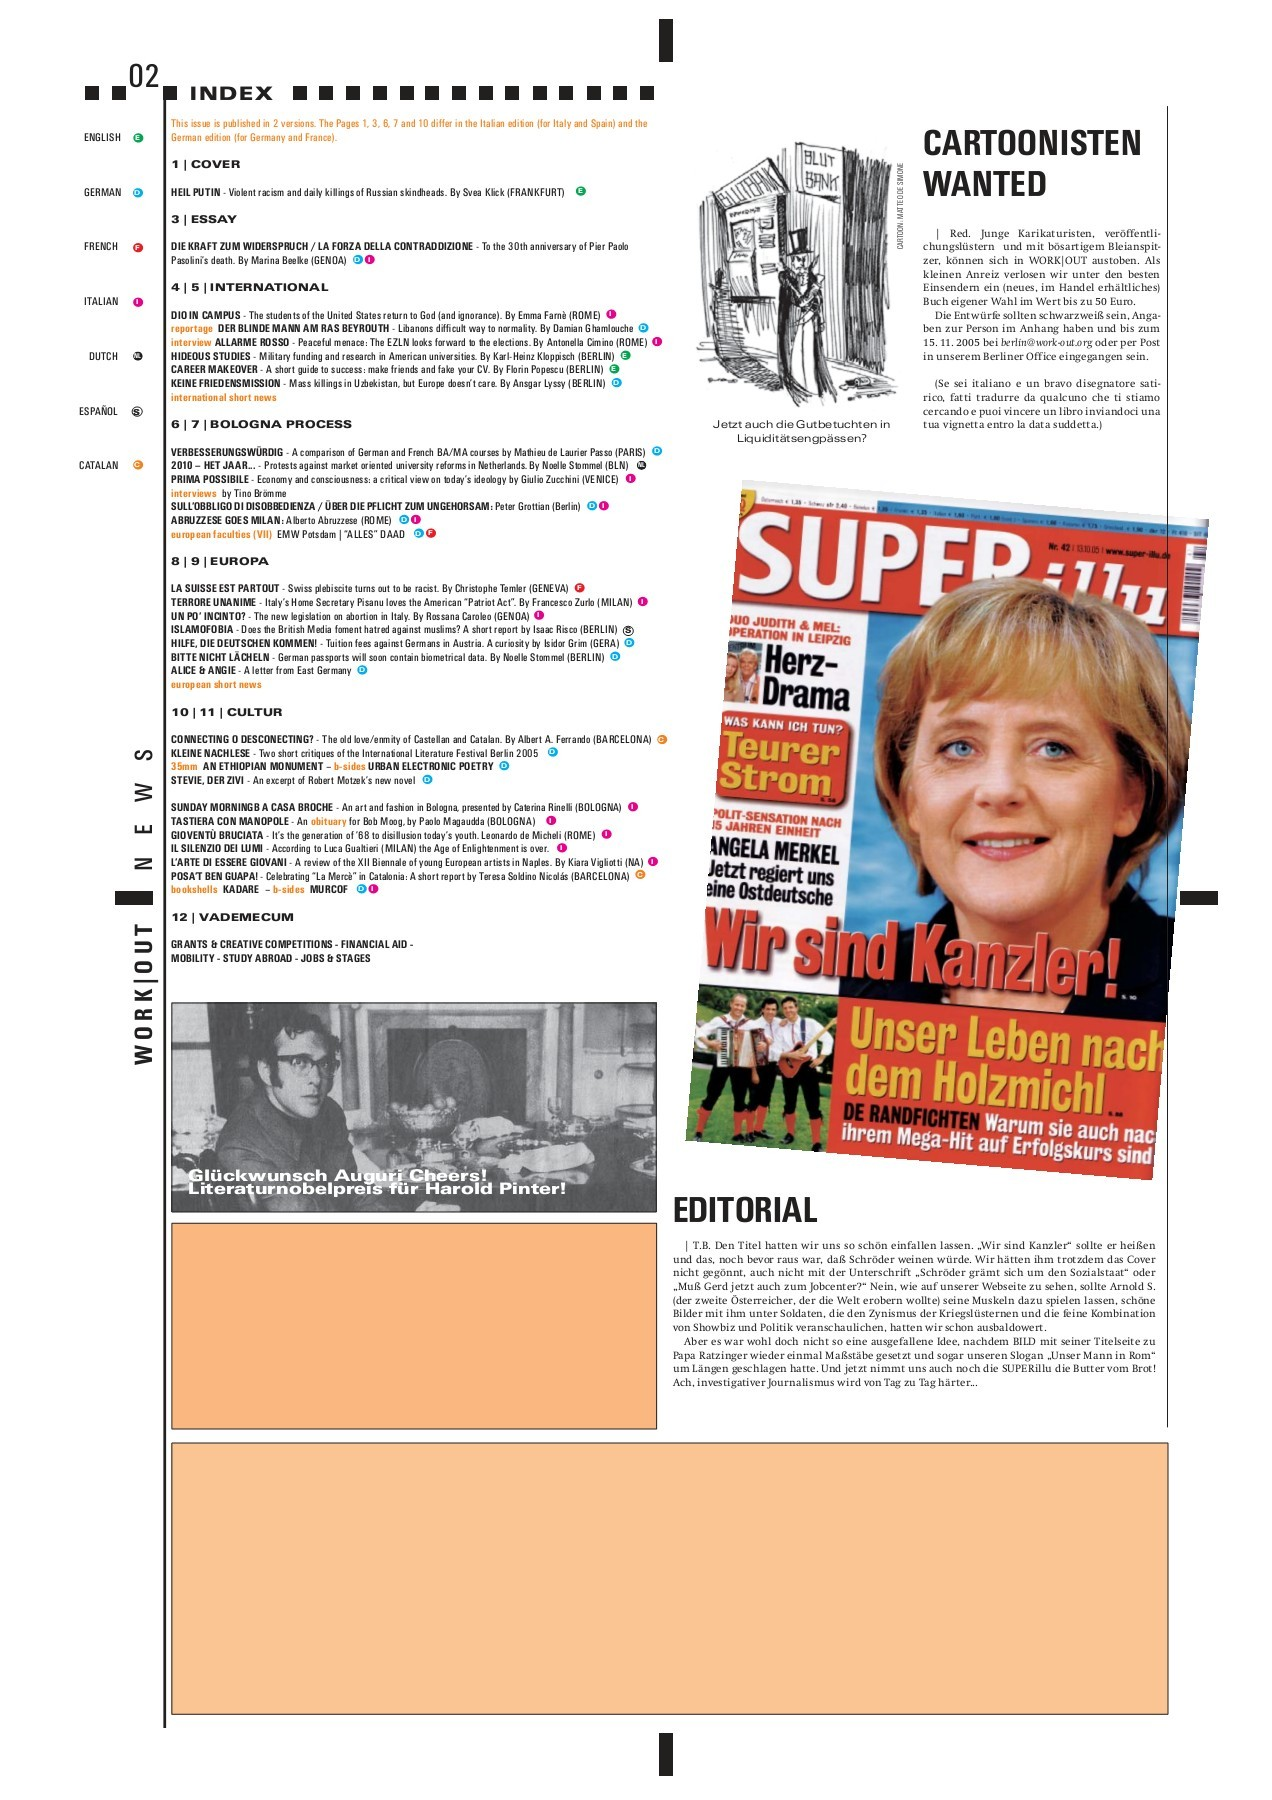 Mein Kampf La Casa Del Libro Work Out Edition 29 German Pages 1 17 Text Version Fliphtml5